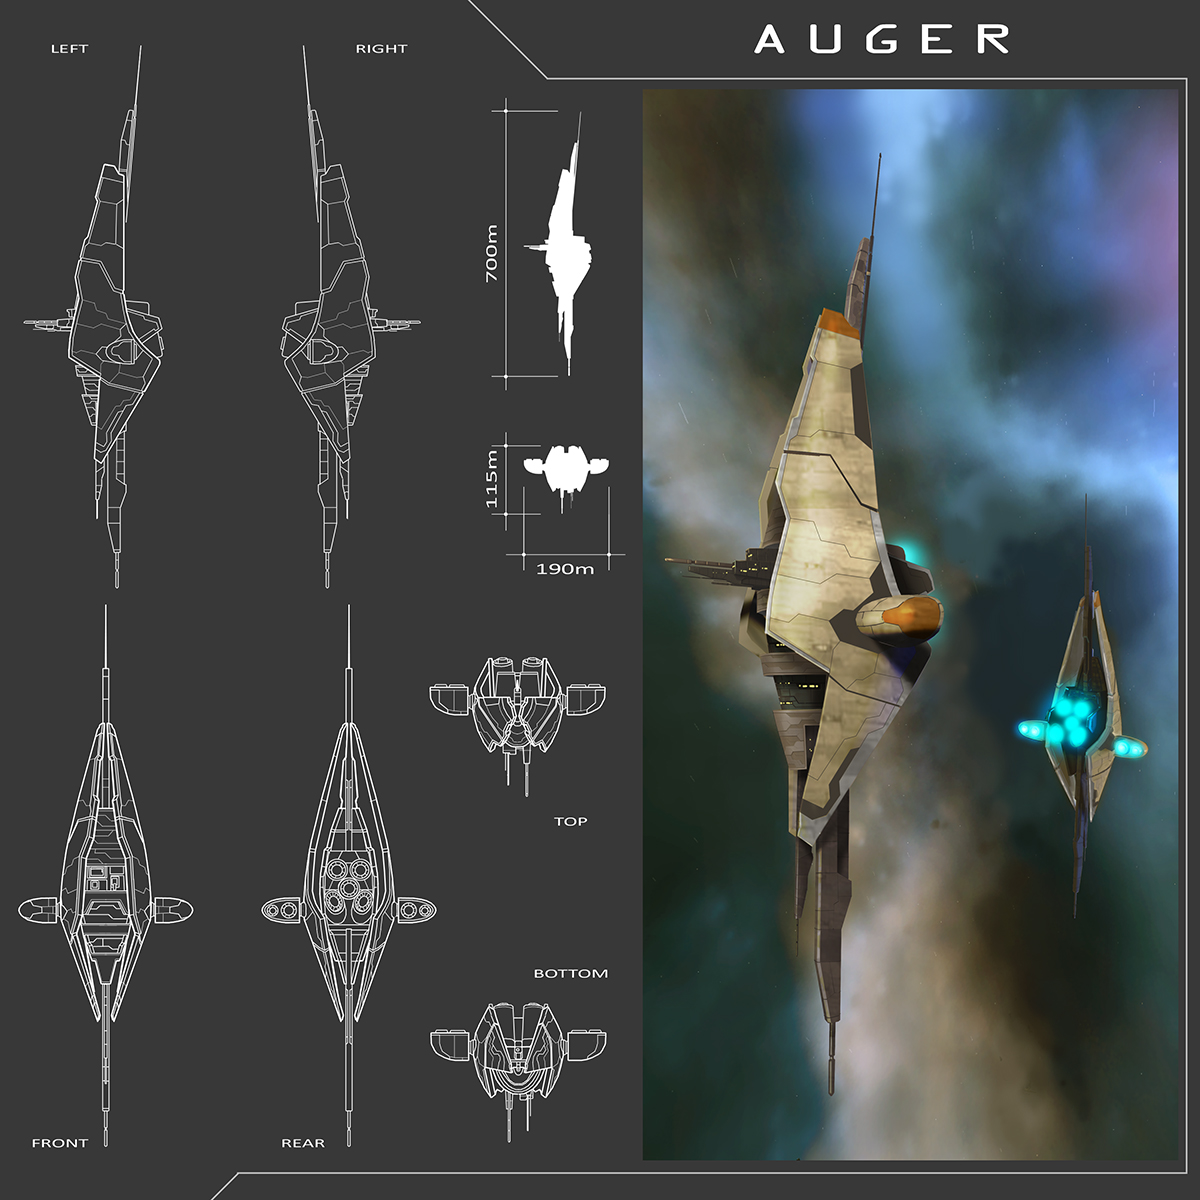 Auger by machinefire